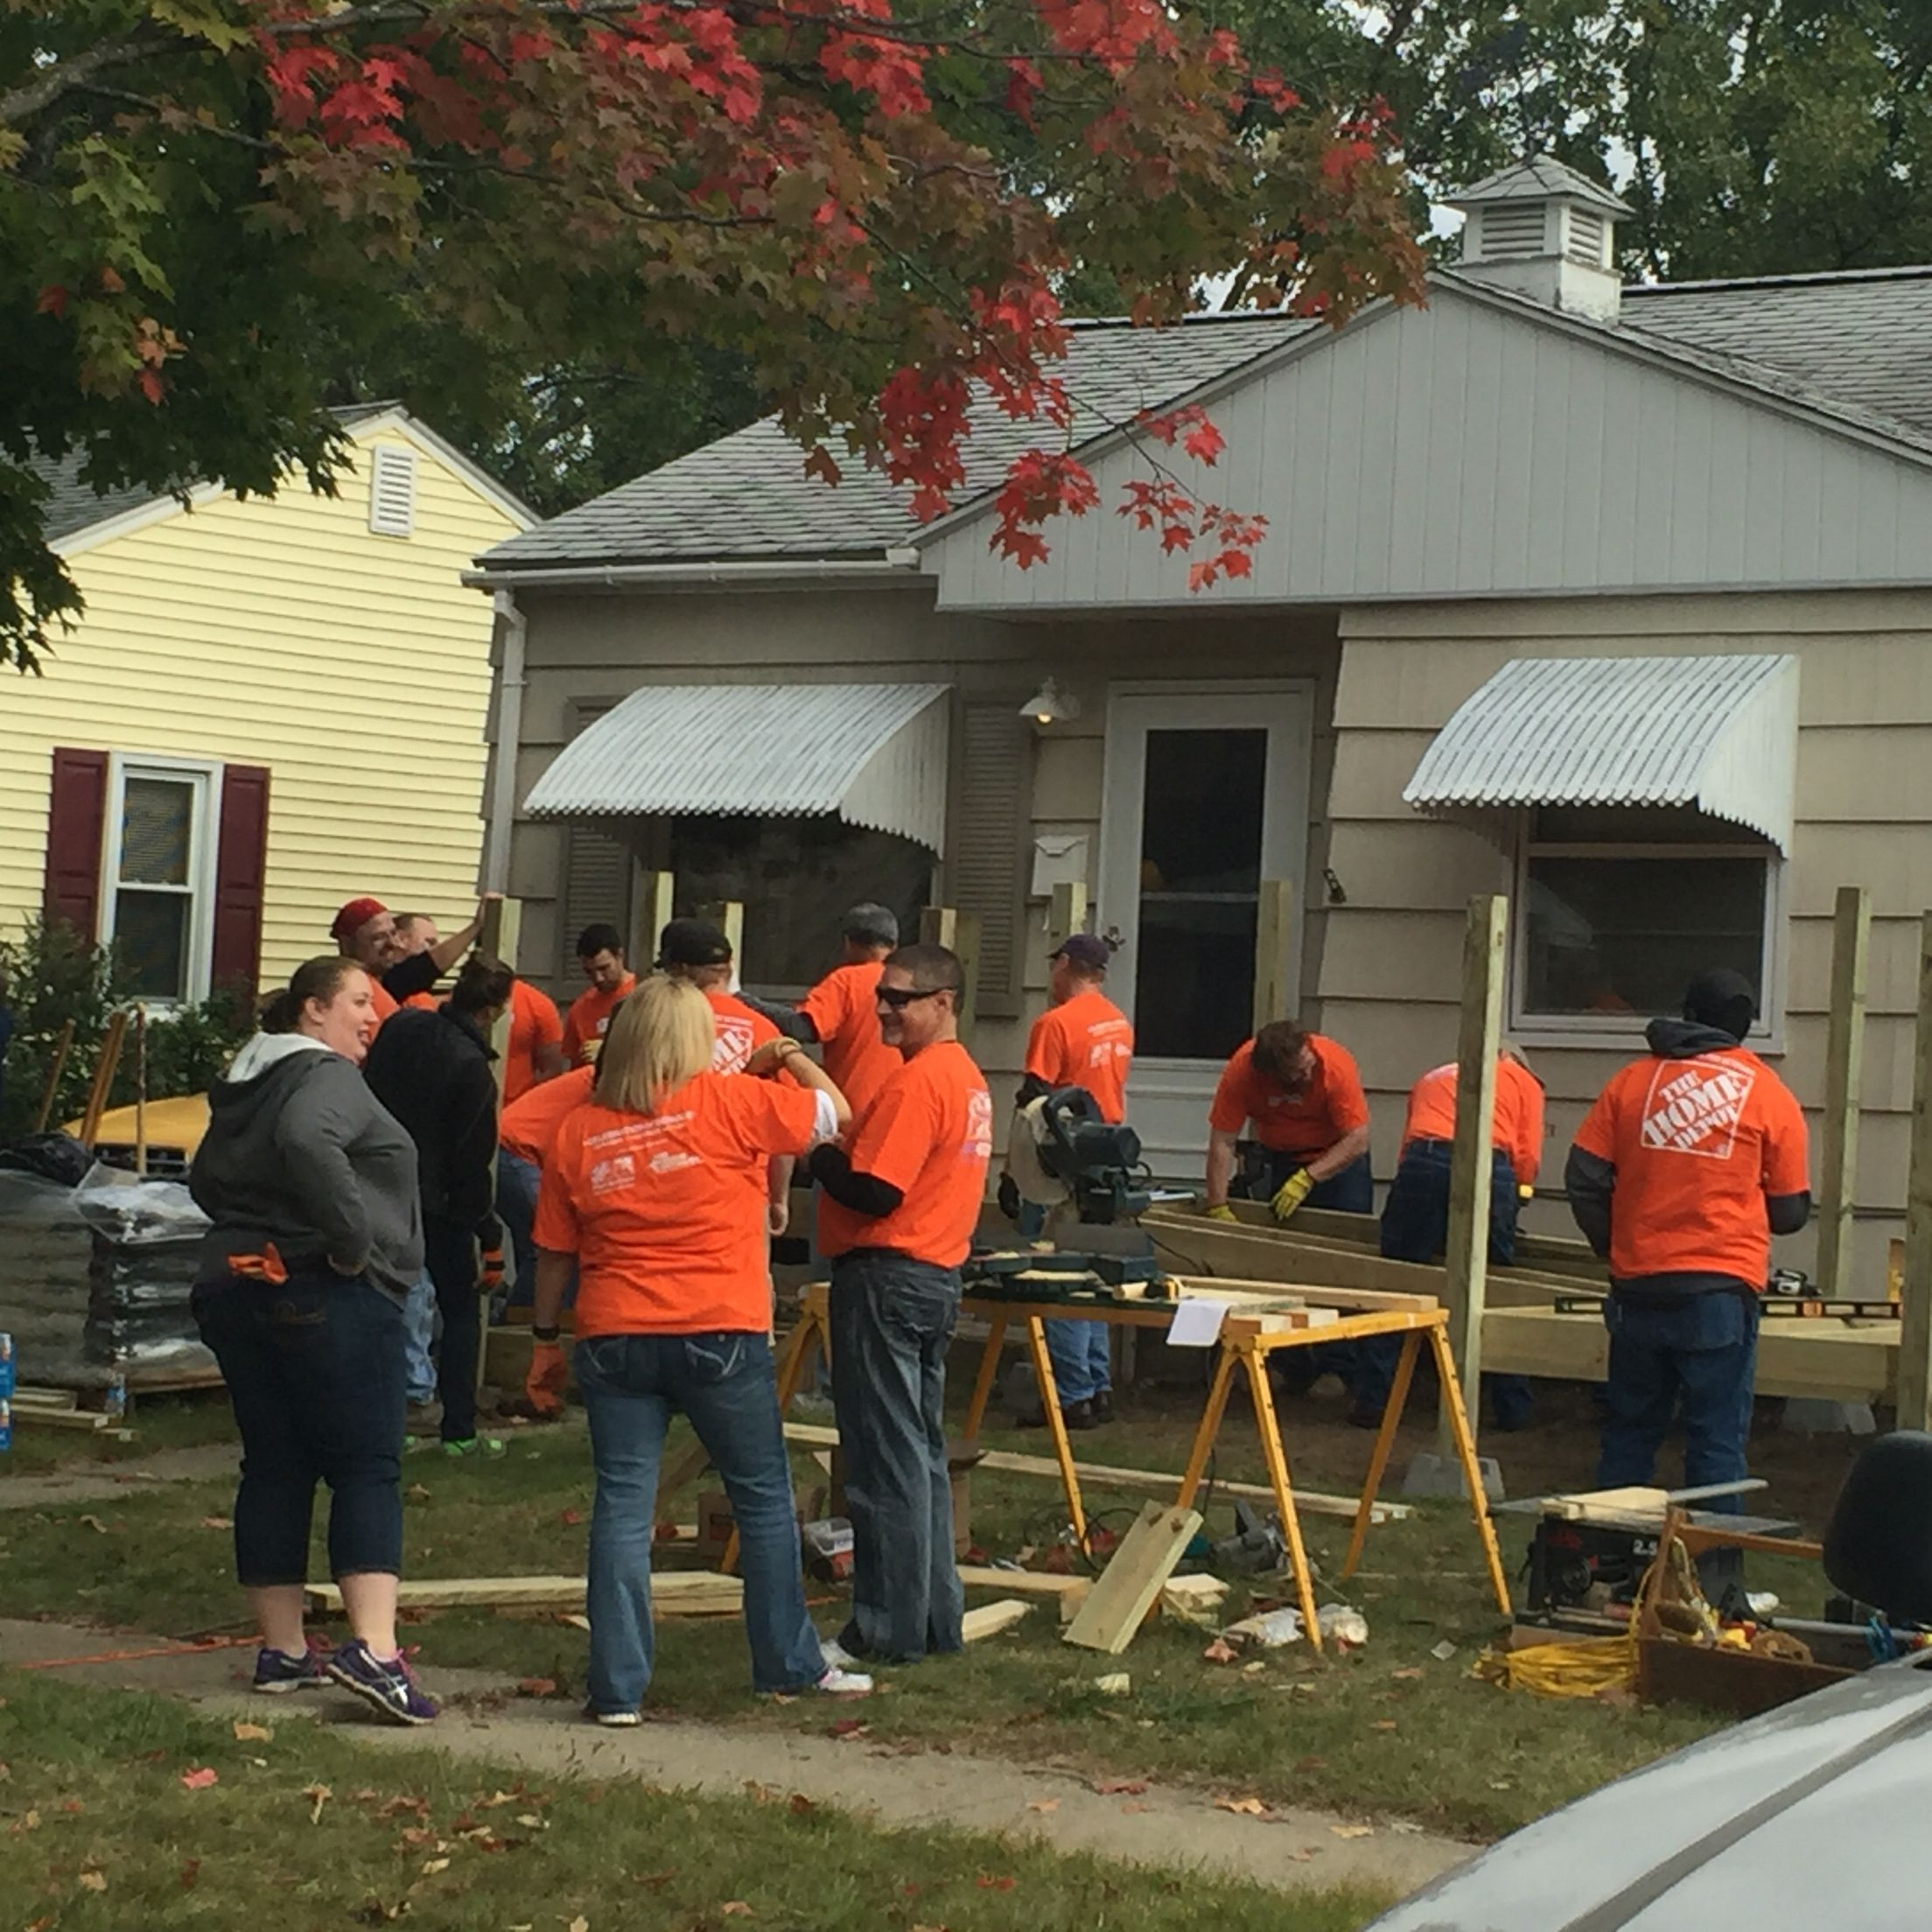 Thank You To Home Depot For Helping Veterans In Need Today